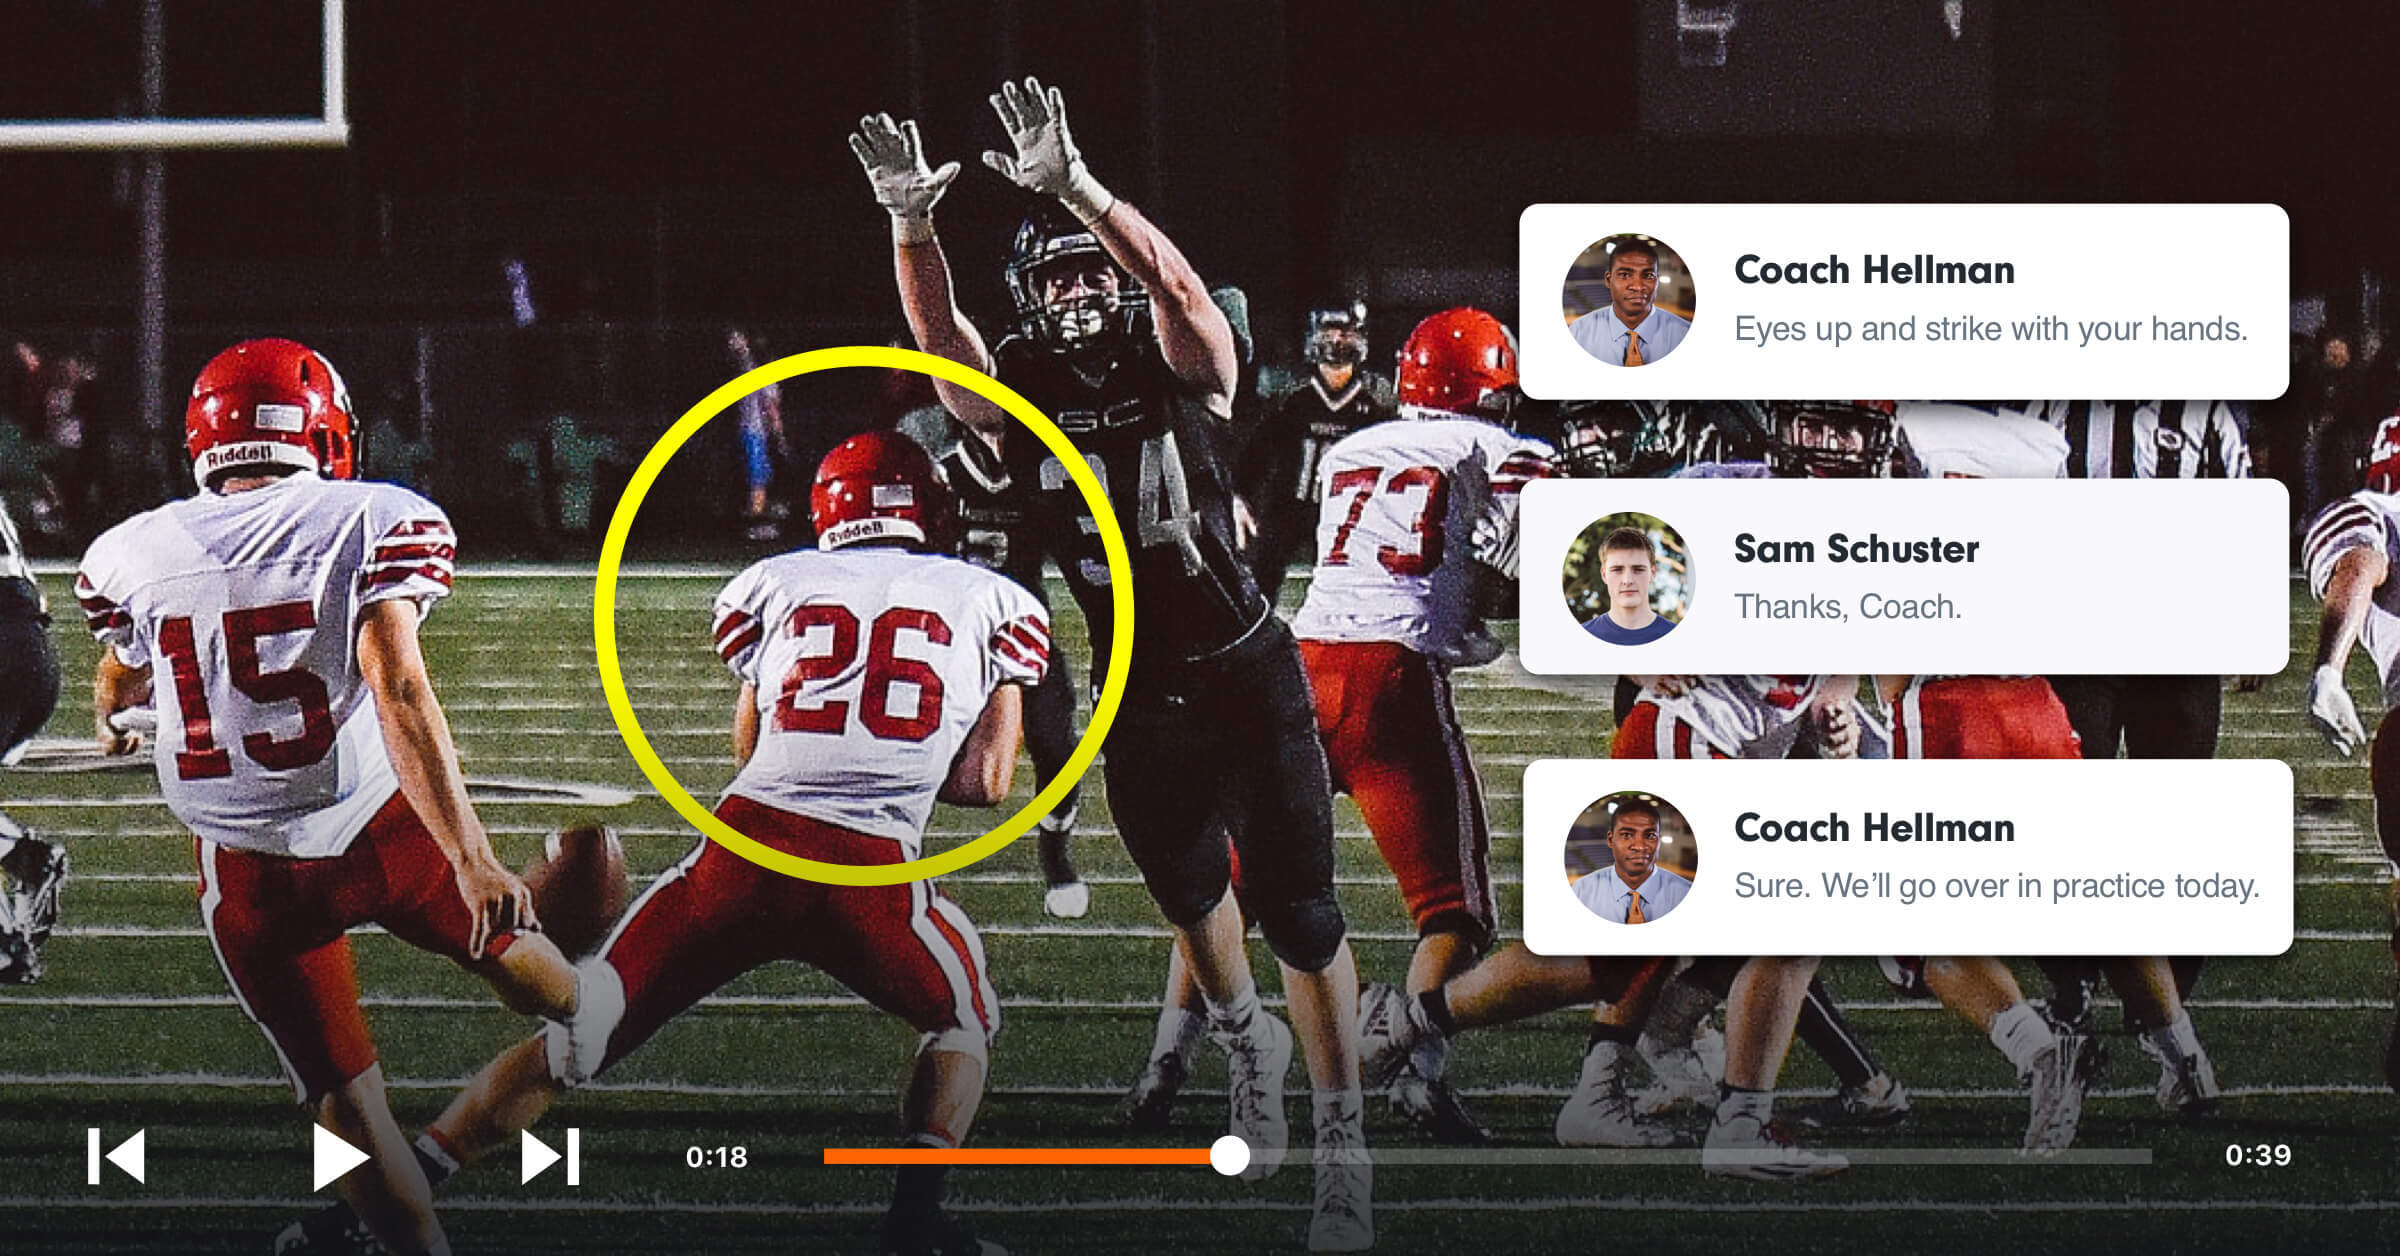 Video Editing and Analysis for American Football | Hudl